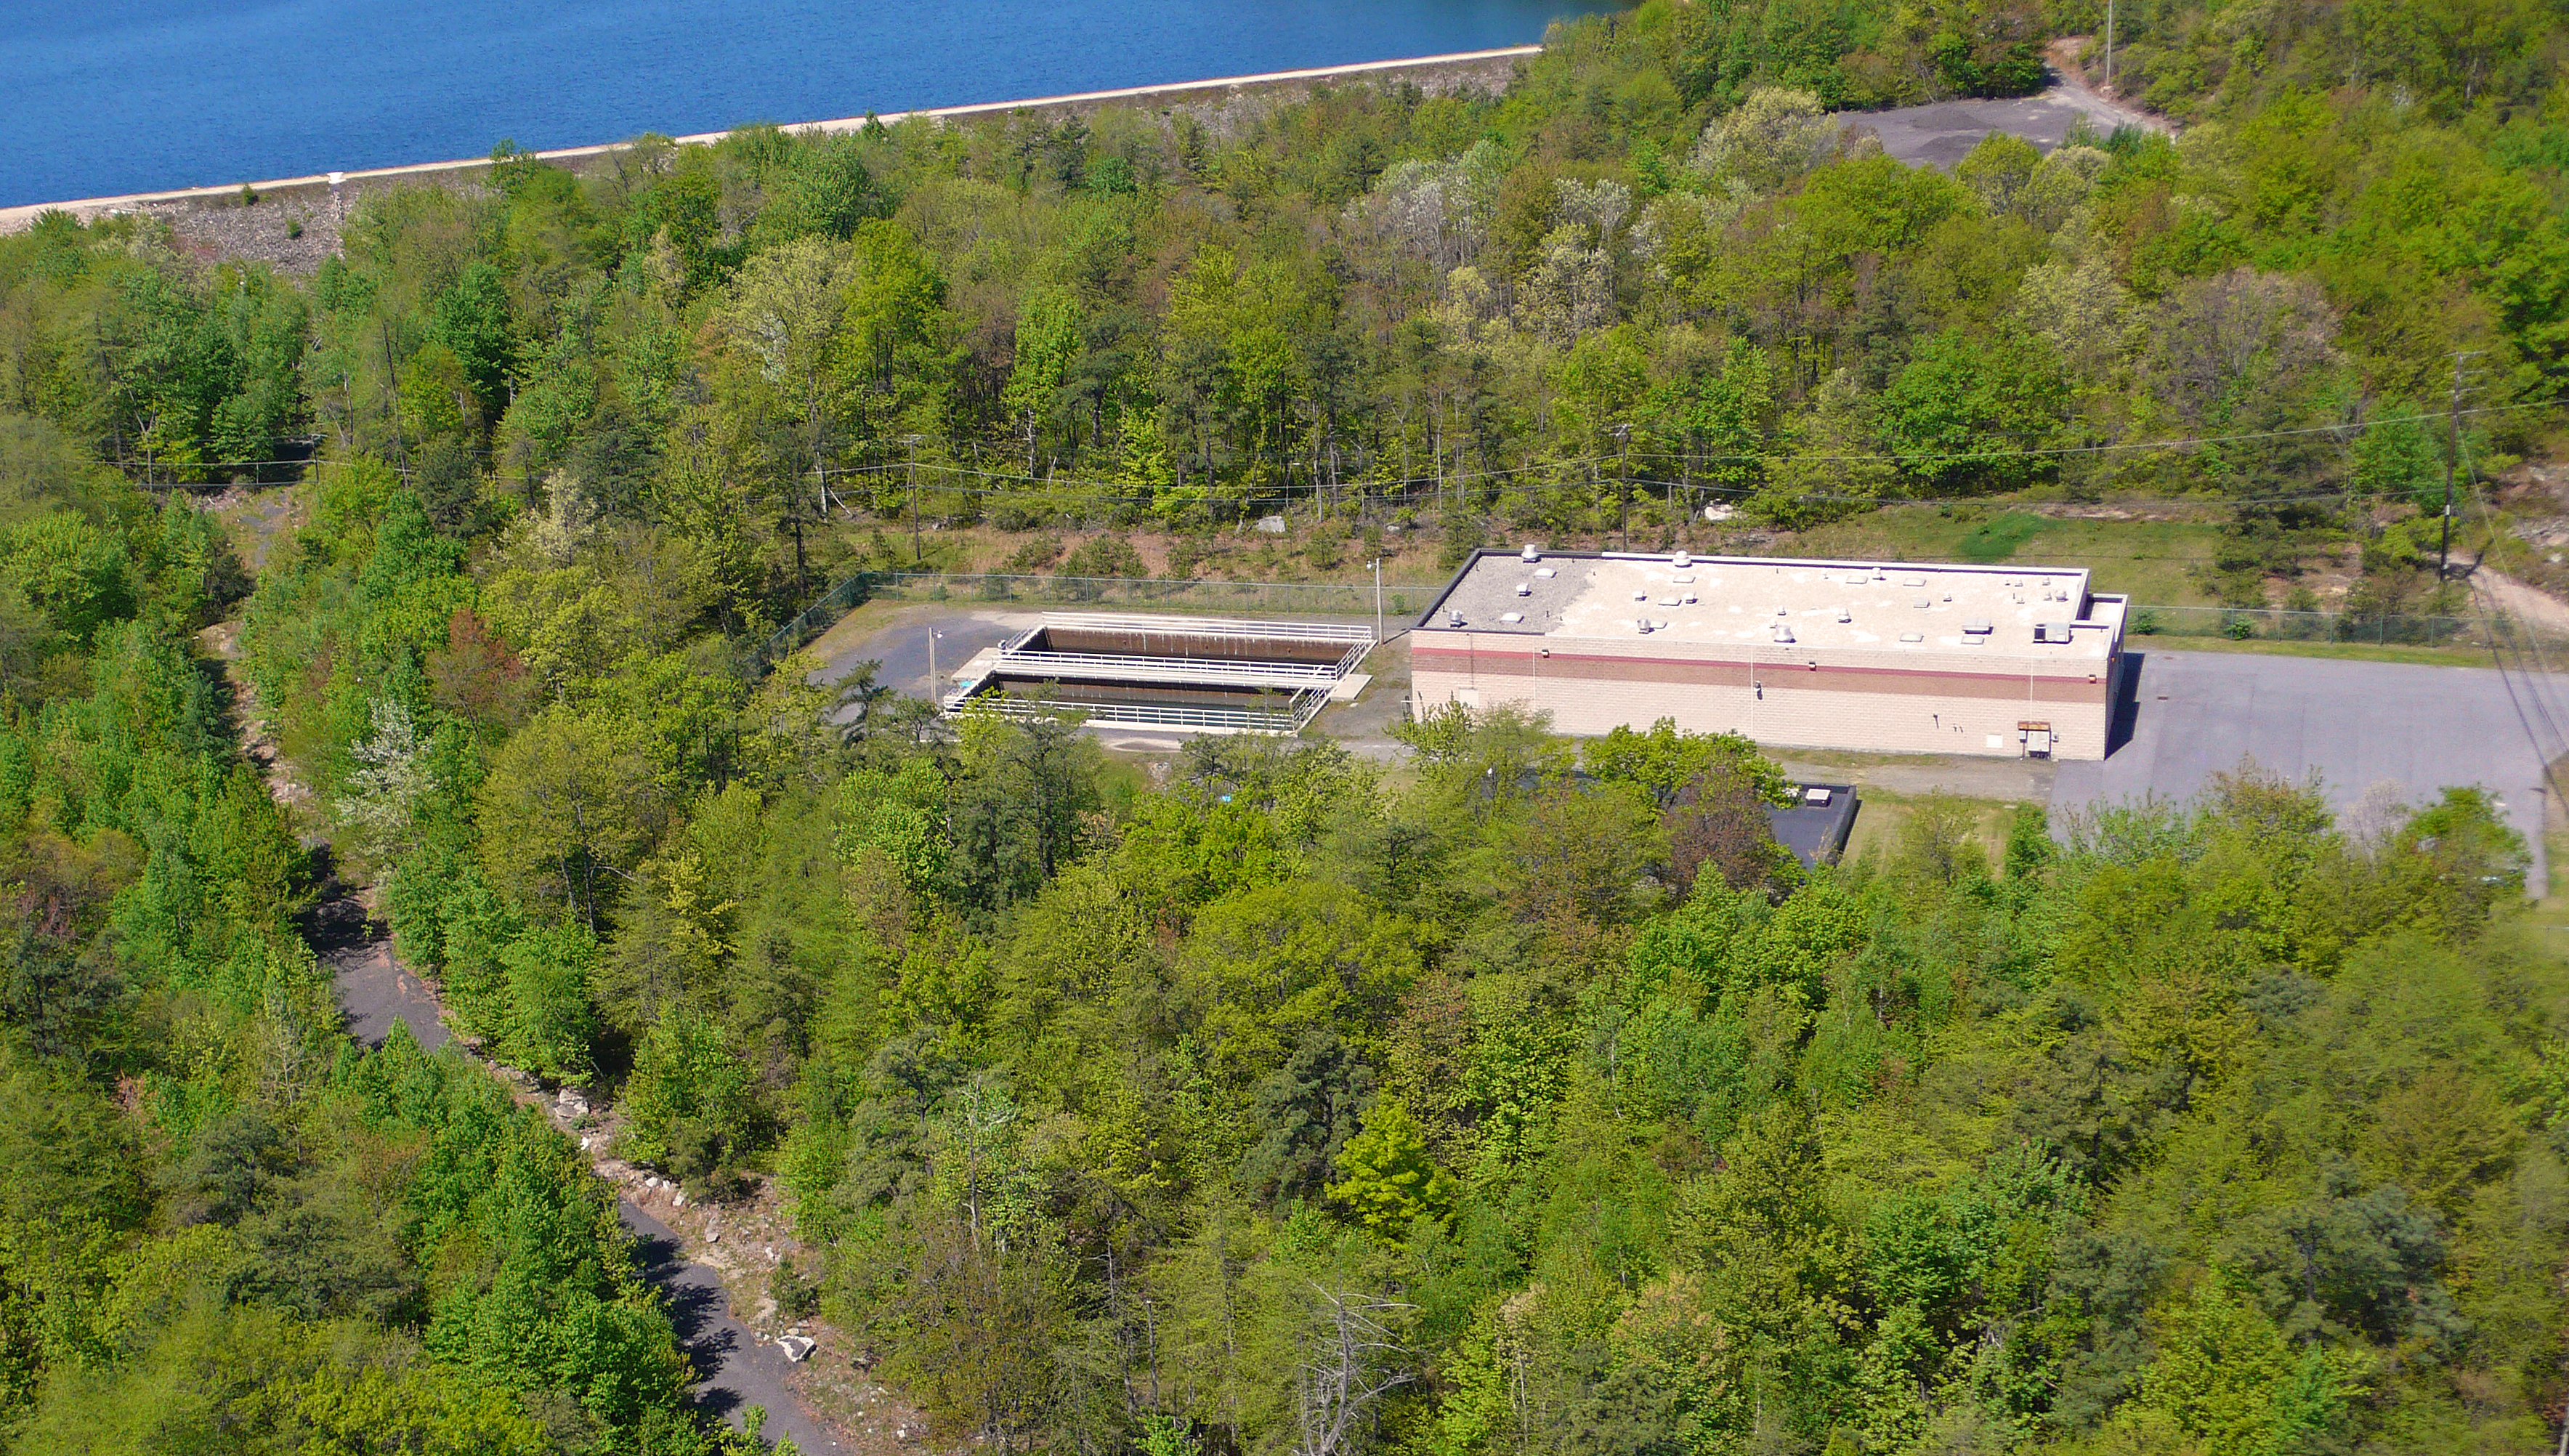 Mount Laurel Water Filtration and Treatment Facility